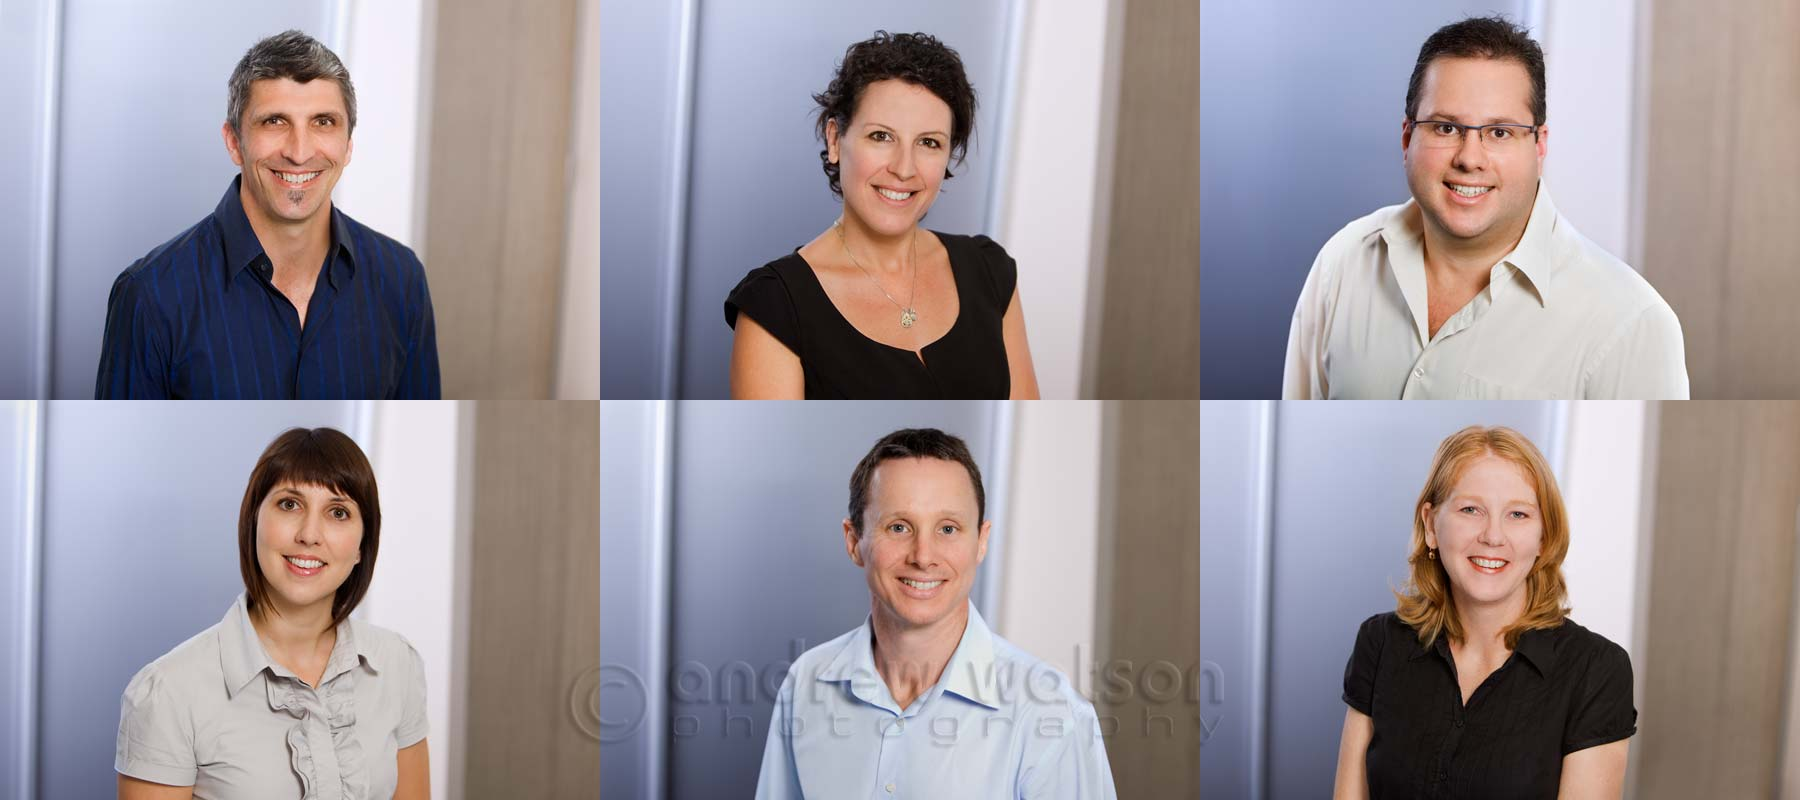 Corporate Photography - Environmental corporate headshots for North Queensland accountancy firm